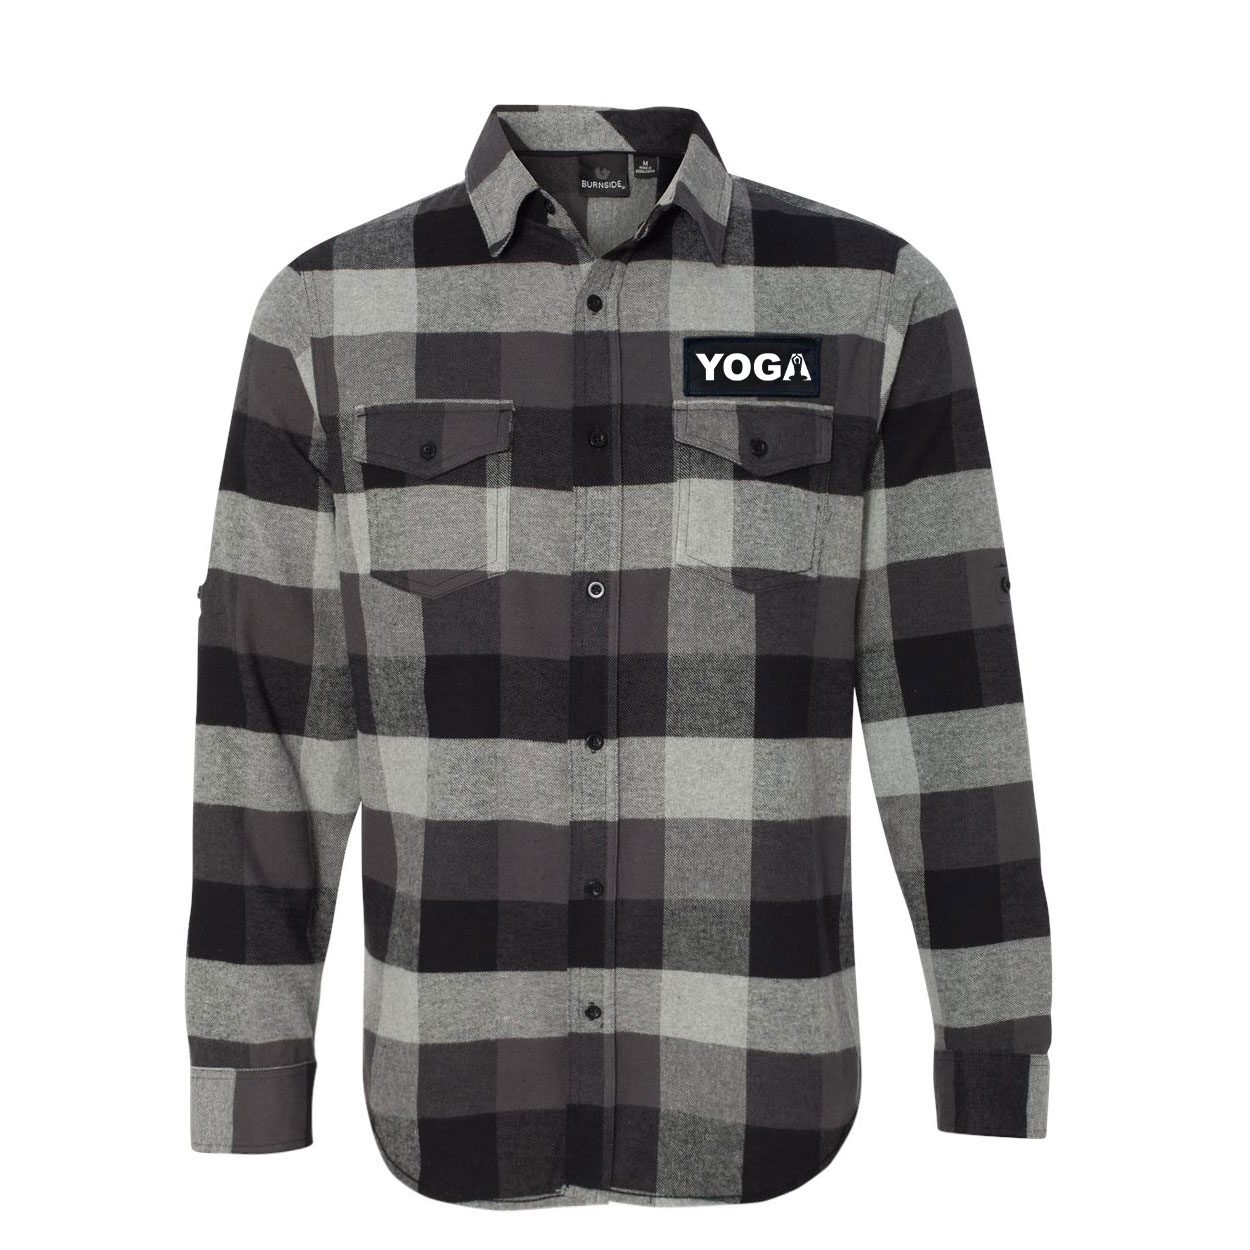 Yoga Meditation Logo Classic Unisex Long Sleeve Woven Patch Flannel Shirt Black/Gray (White Logo)